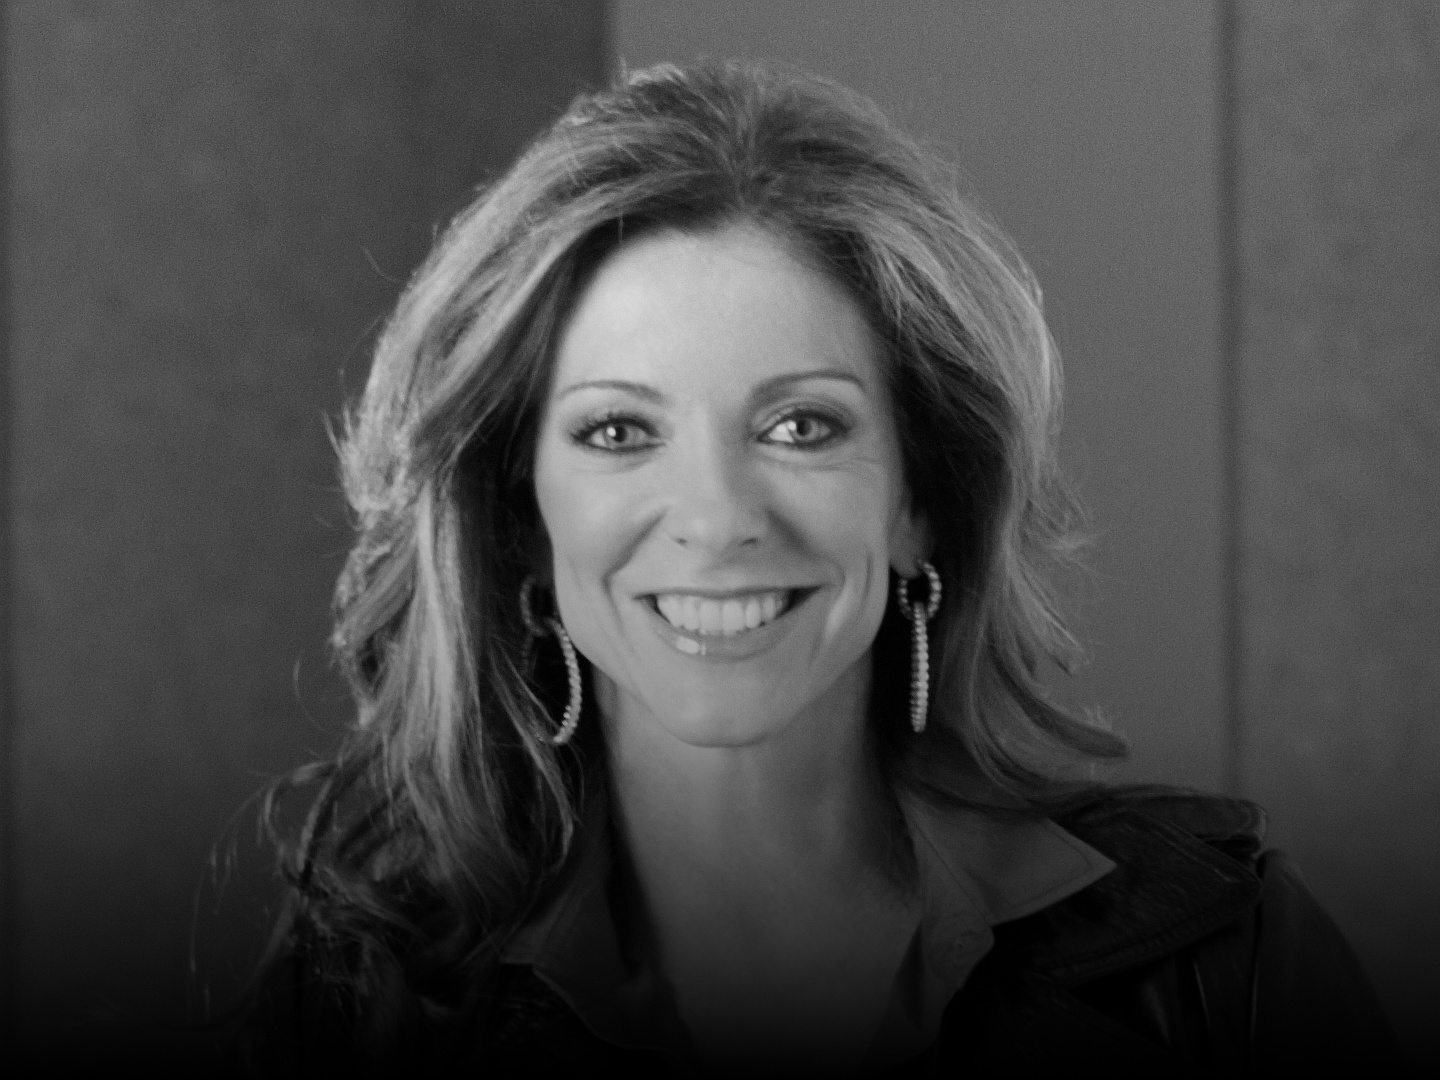 Image of Charlotte Jones Anderson